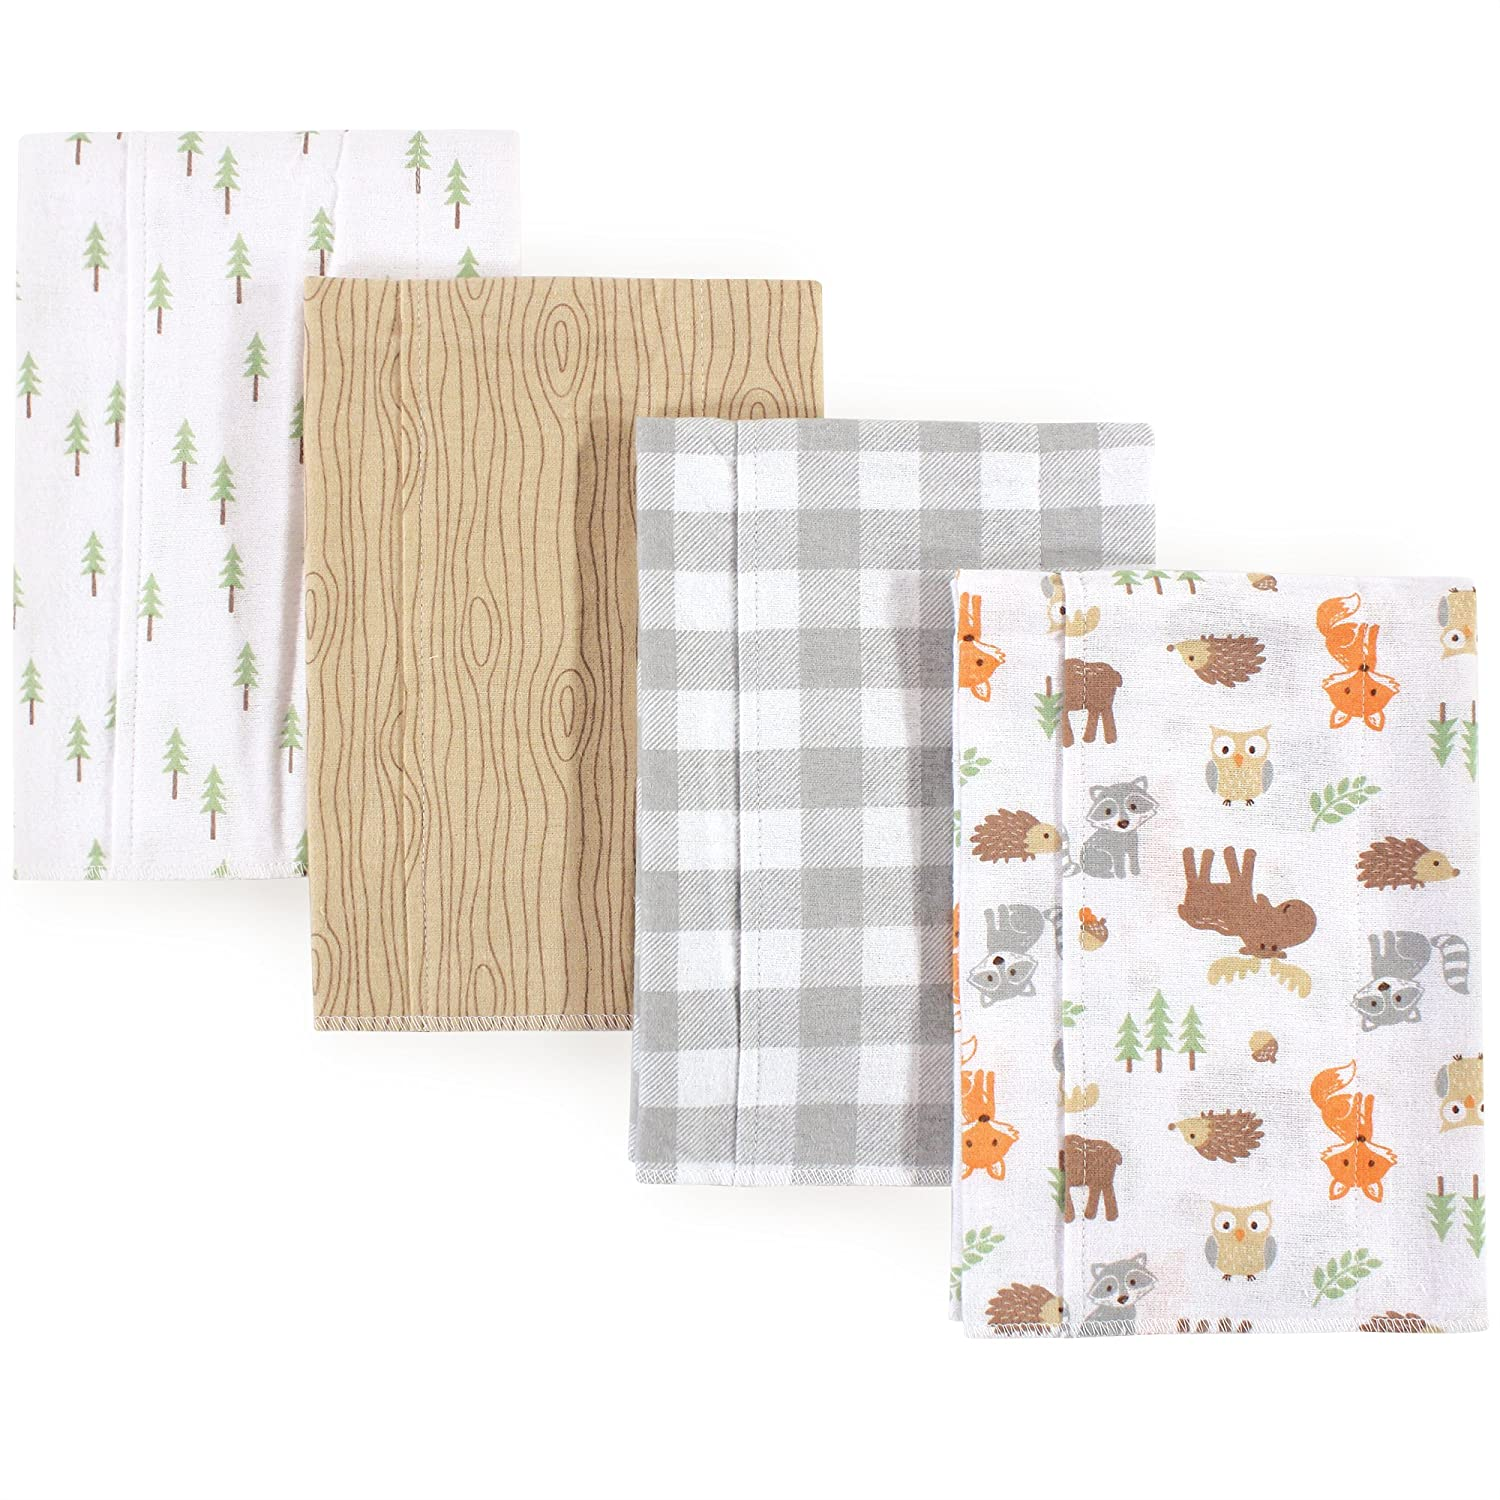 Hudson Baby Flannel Burp Cloths, Peacock Feathers 51069_Peacock